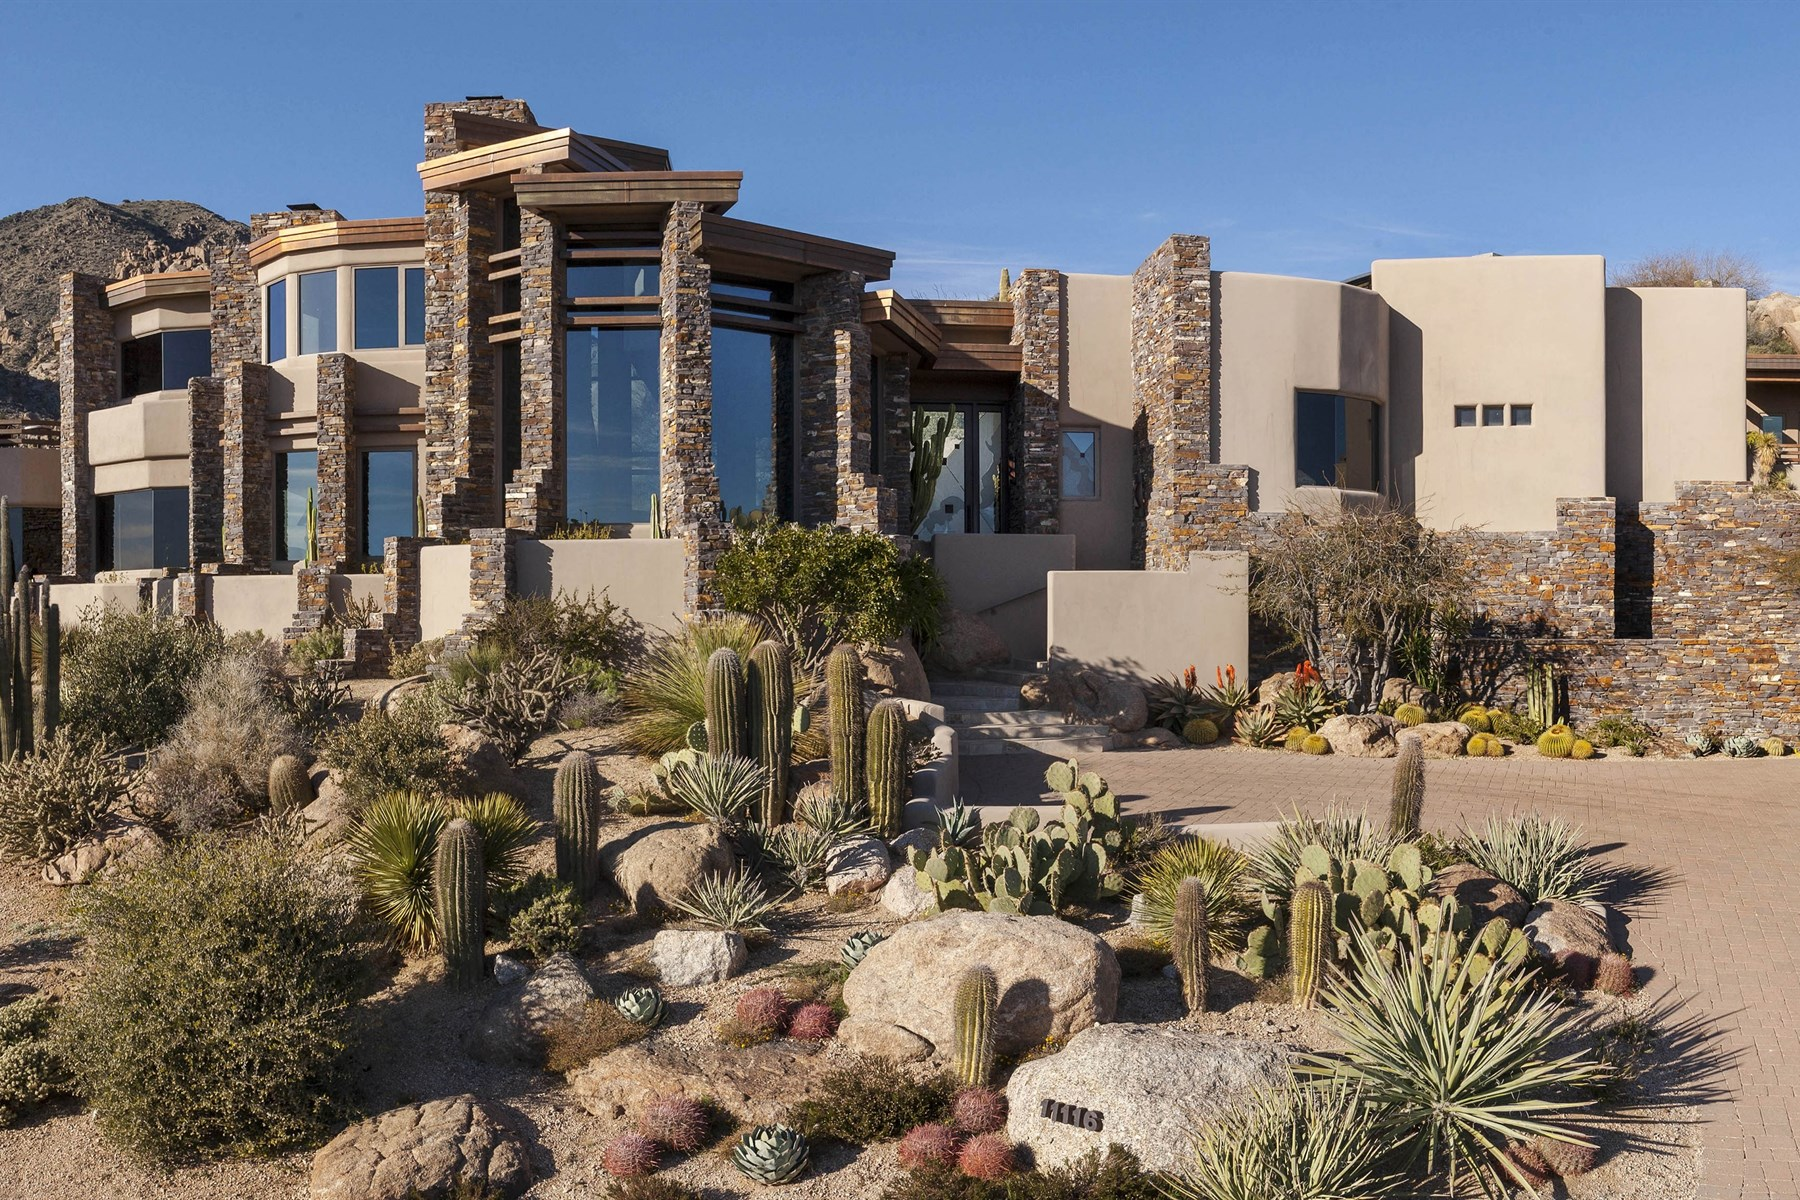 一戸建て のために 売買 アット Fabulous one of a kind home is designed around spectacular boulder outcroppings 11116 E Distant Hills Dr Scottsdale, アリゾナ 85262 アメリカ合衆国